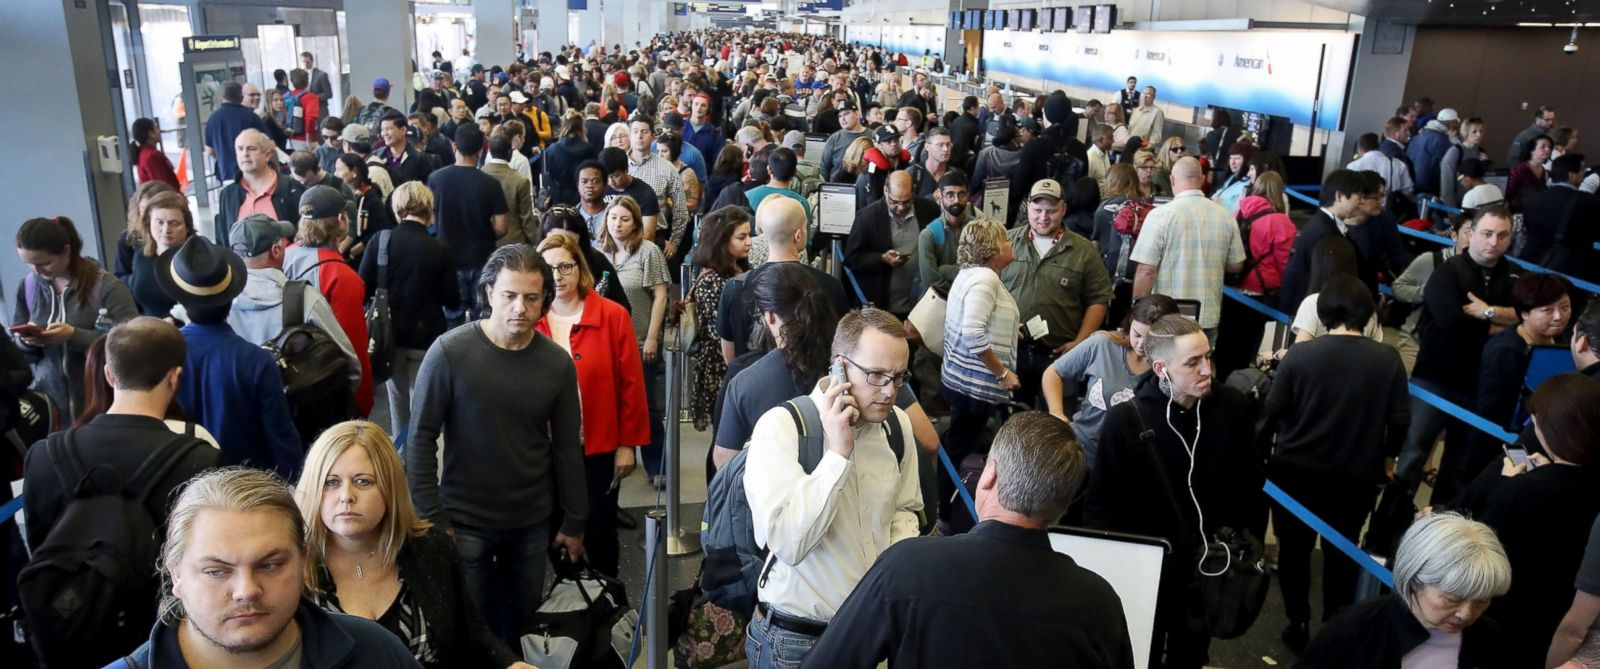 PHOTO: Passengers at OHare International Airport wait in line to be screened at a Transportation Security Administration (TSA) checkpoint, May 16, 2016, in Chicago.